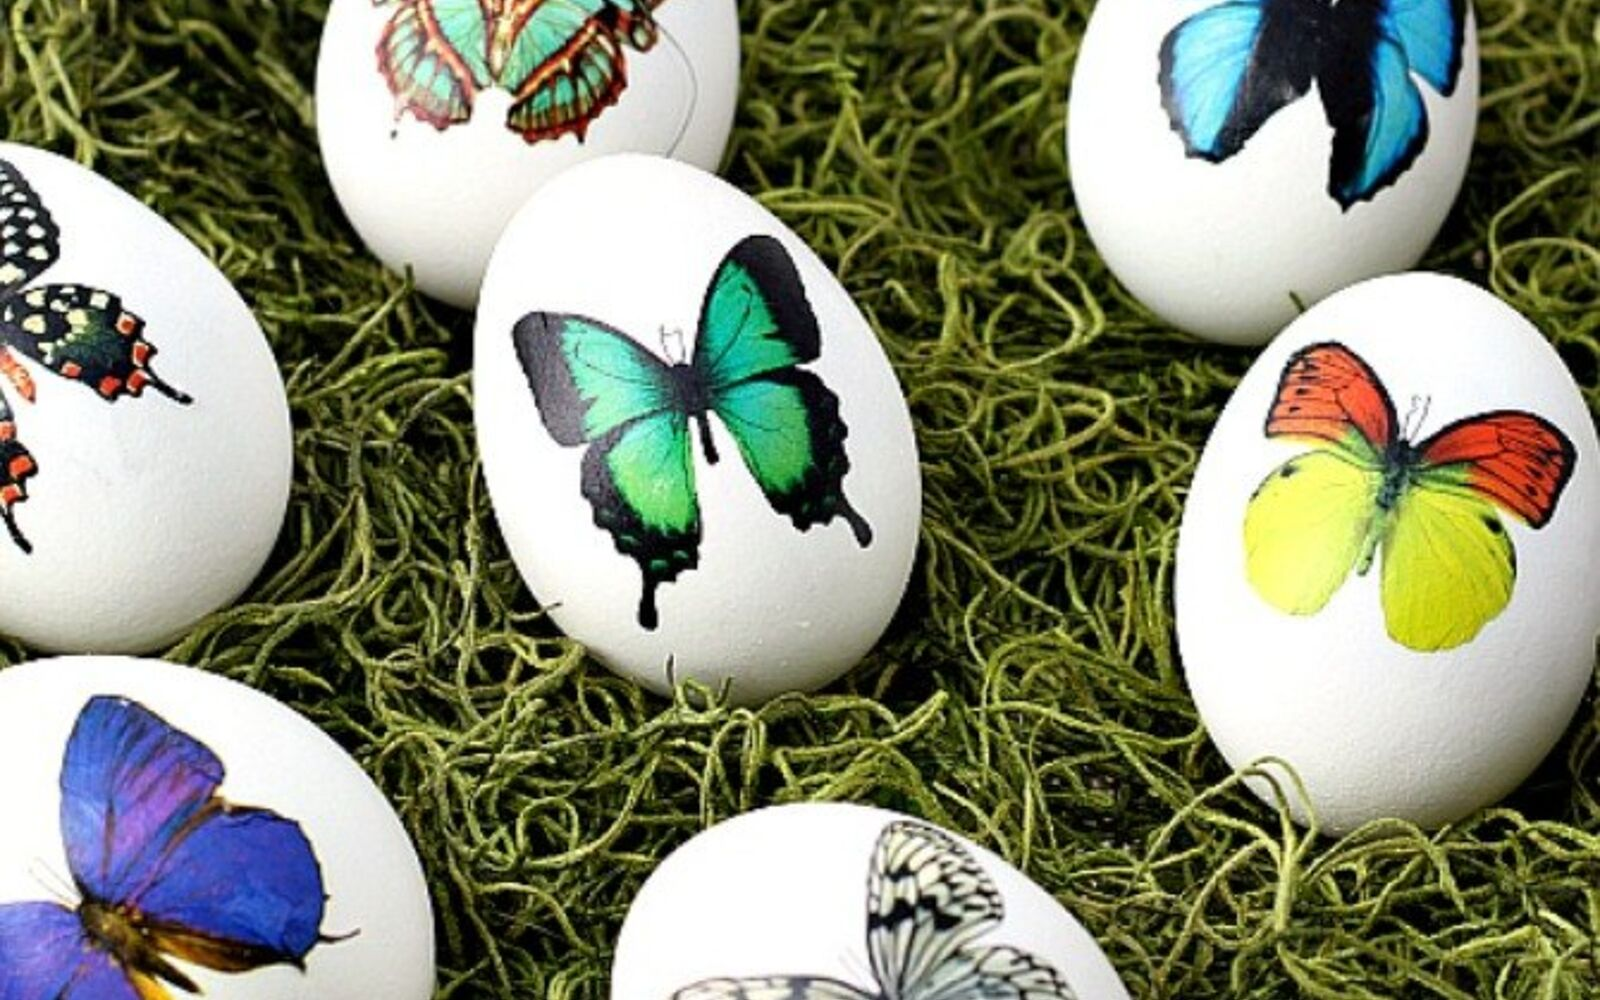 s 23 totally different ways to decorate real eggs this easter, crafts, easter decorations, Skip the mess with temporary tattoos